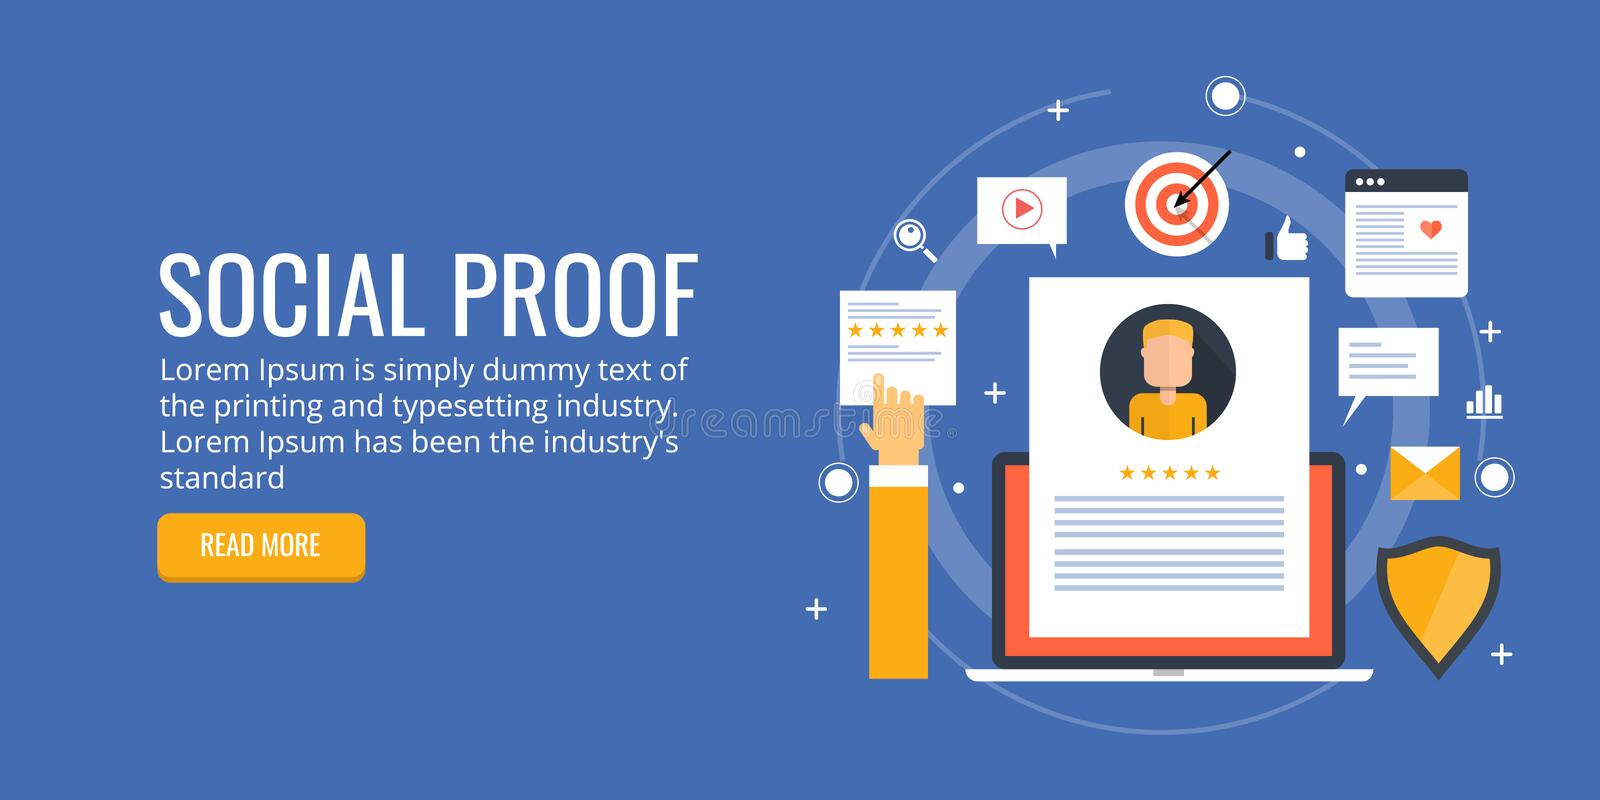 Social media marketing, product and service selling on social networks with testimonial and feed back. Concept of social proof, with network, media, target and royalty free illustration